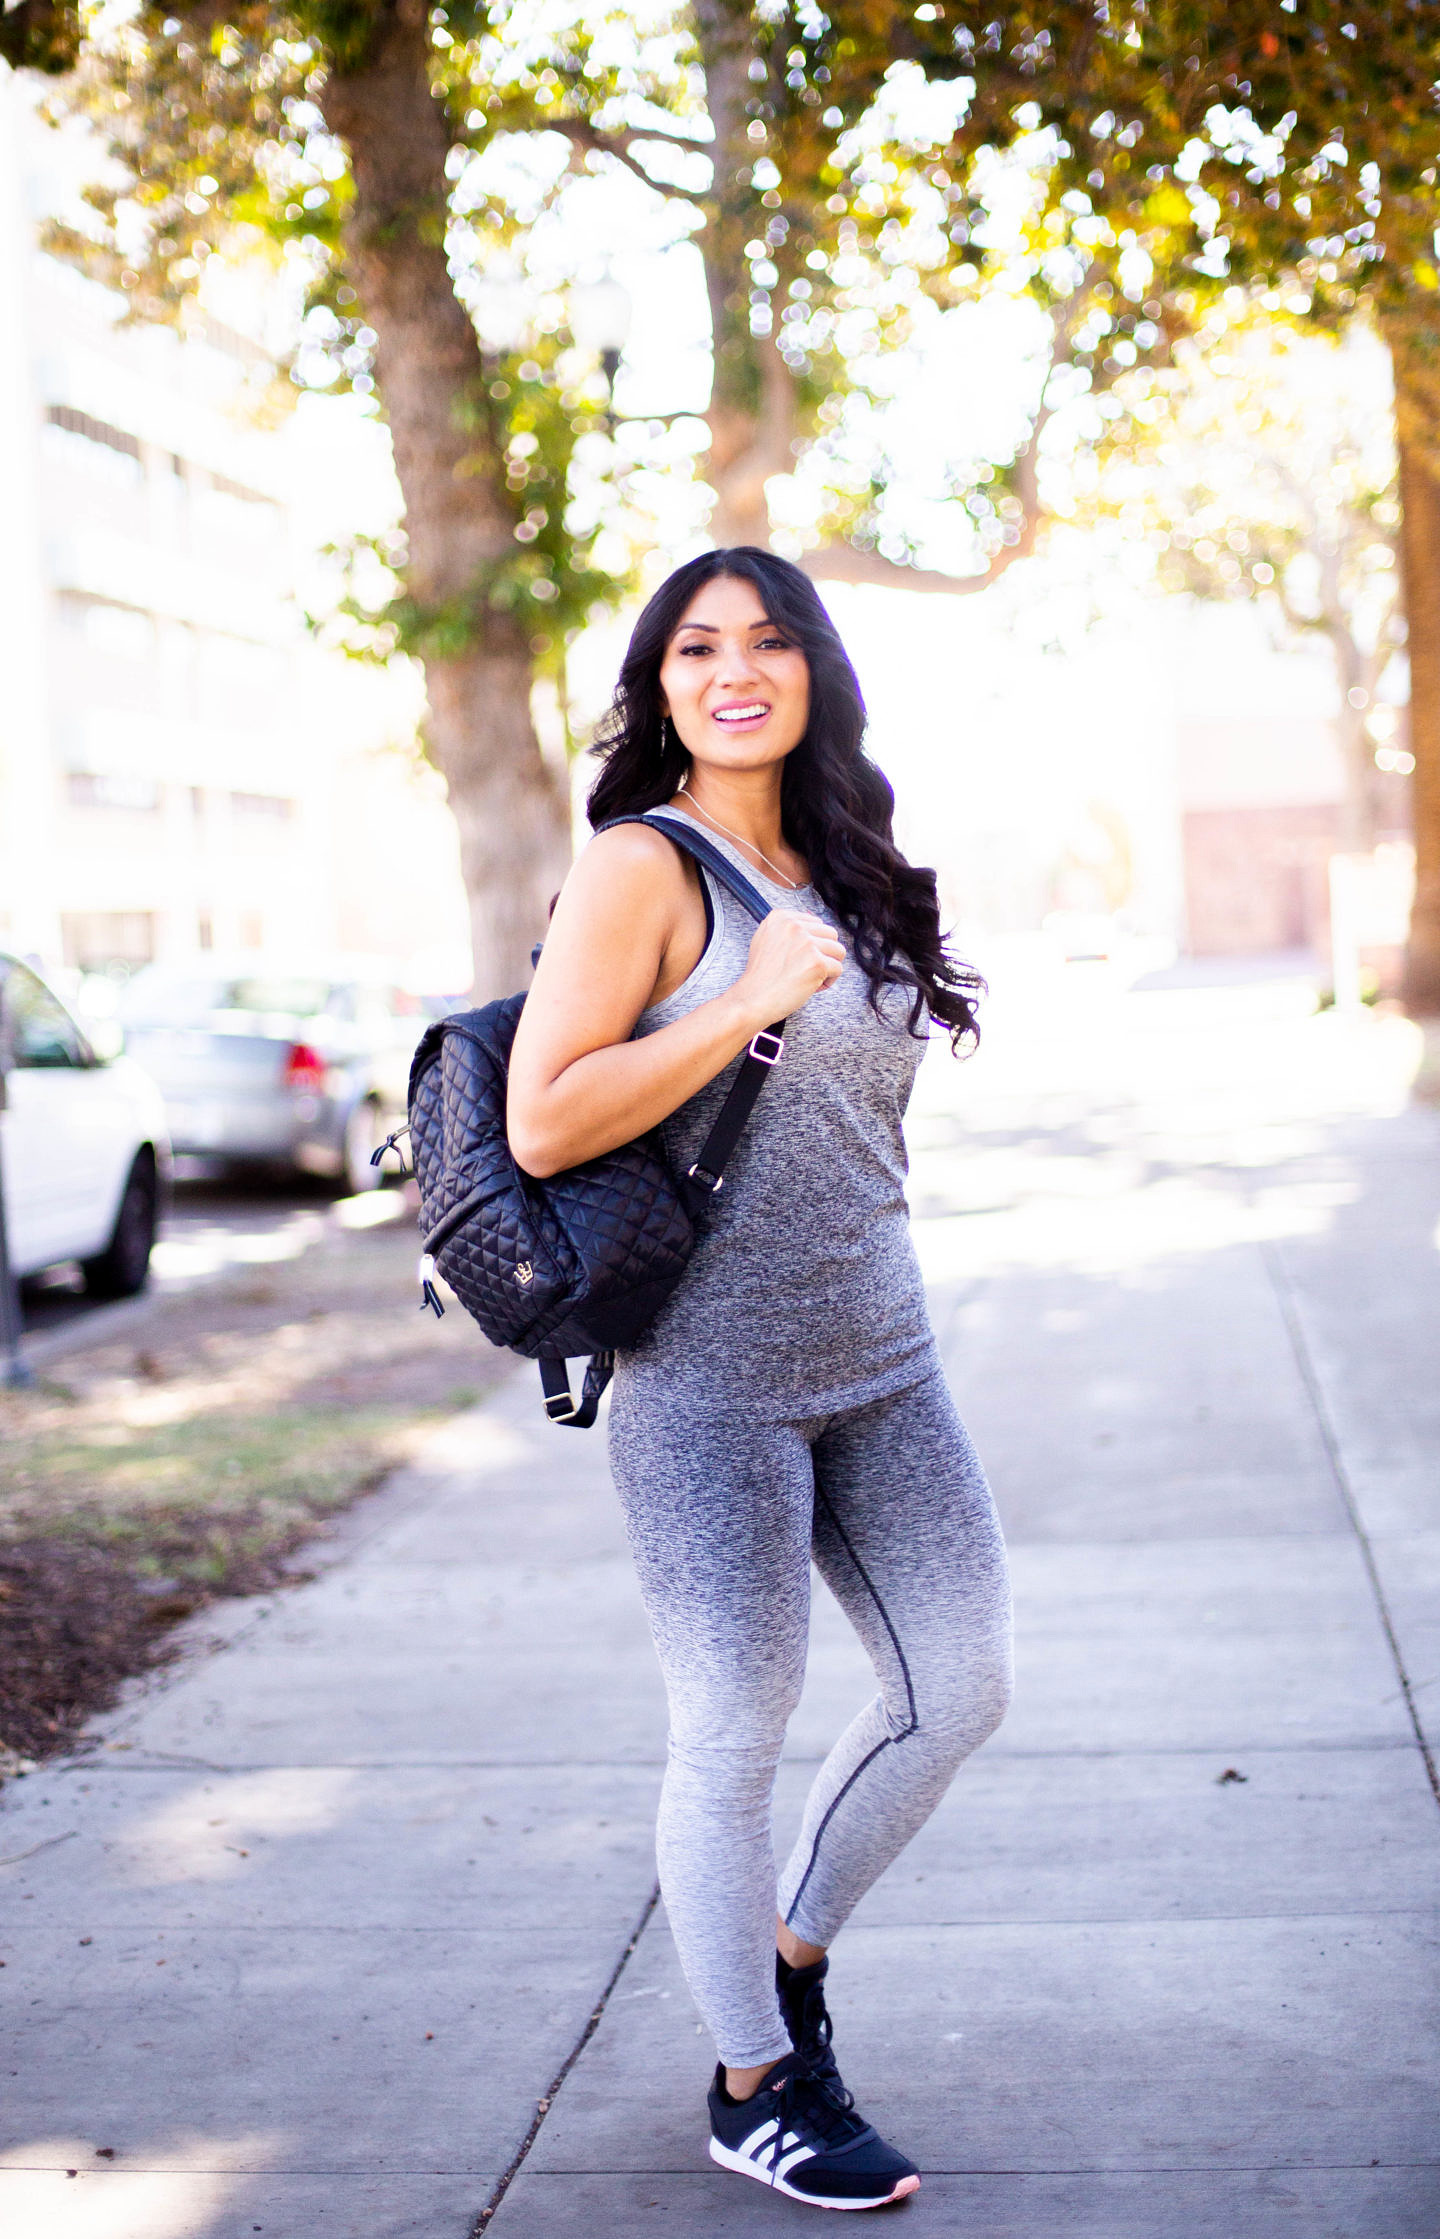 Looking for the perfect athletic apparel? Orange County Blogger Debbie Savage is sharing her favorite new athletic apparel that you need to try ASAP here!